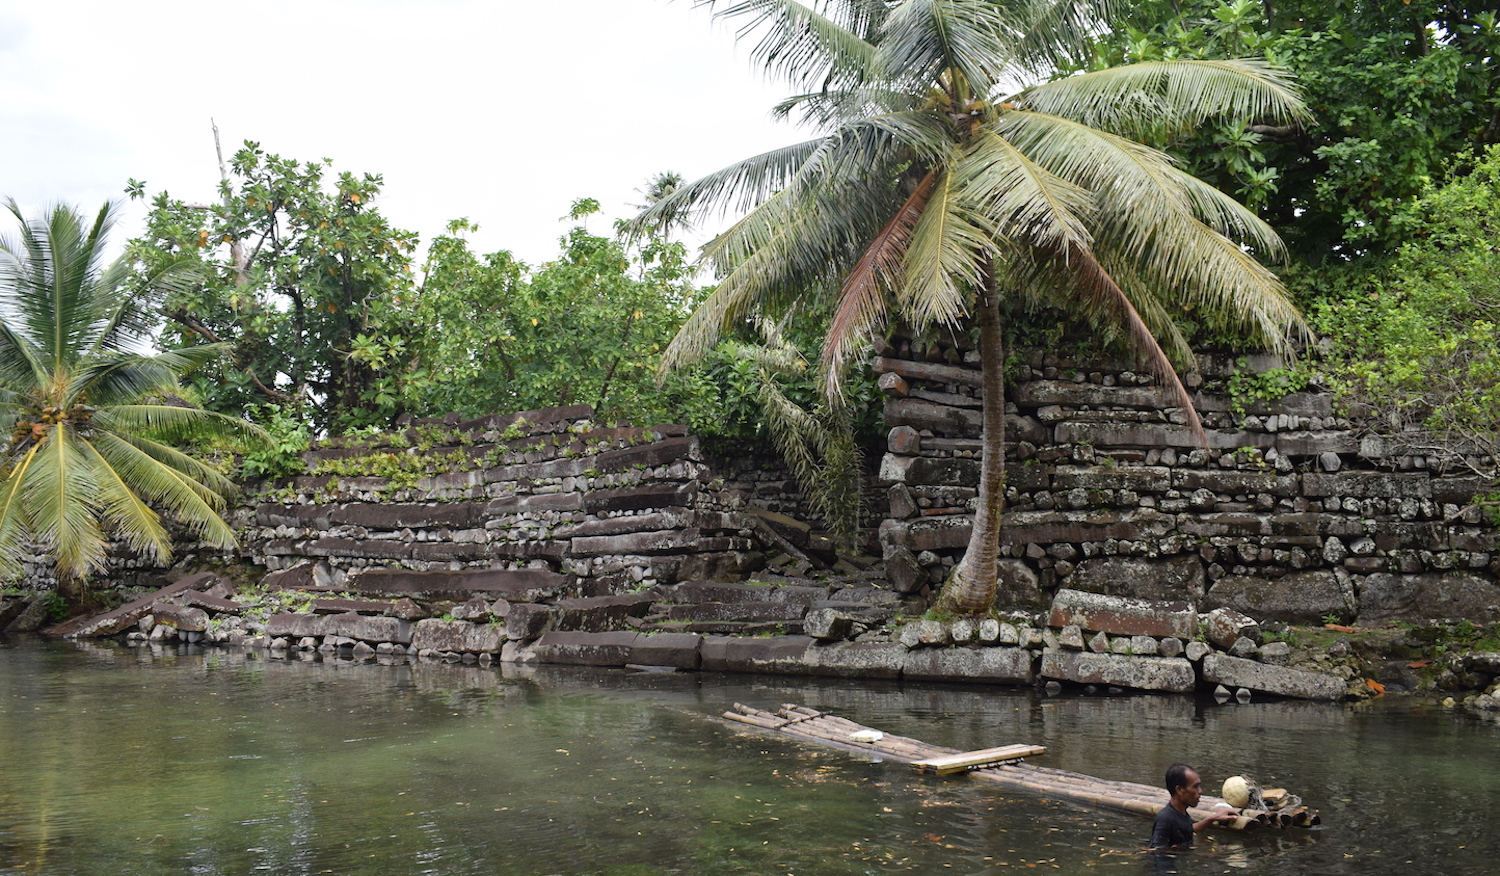 Raft at Nan Madol in Pohnpei